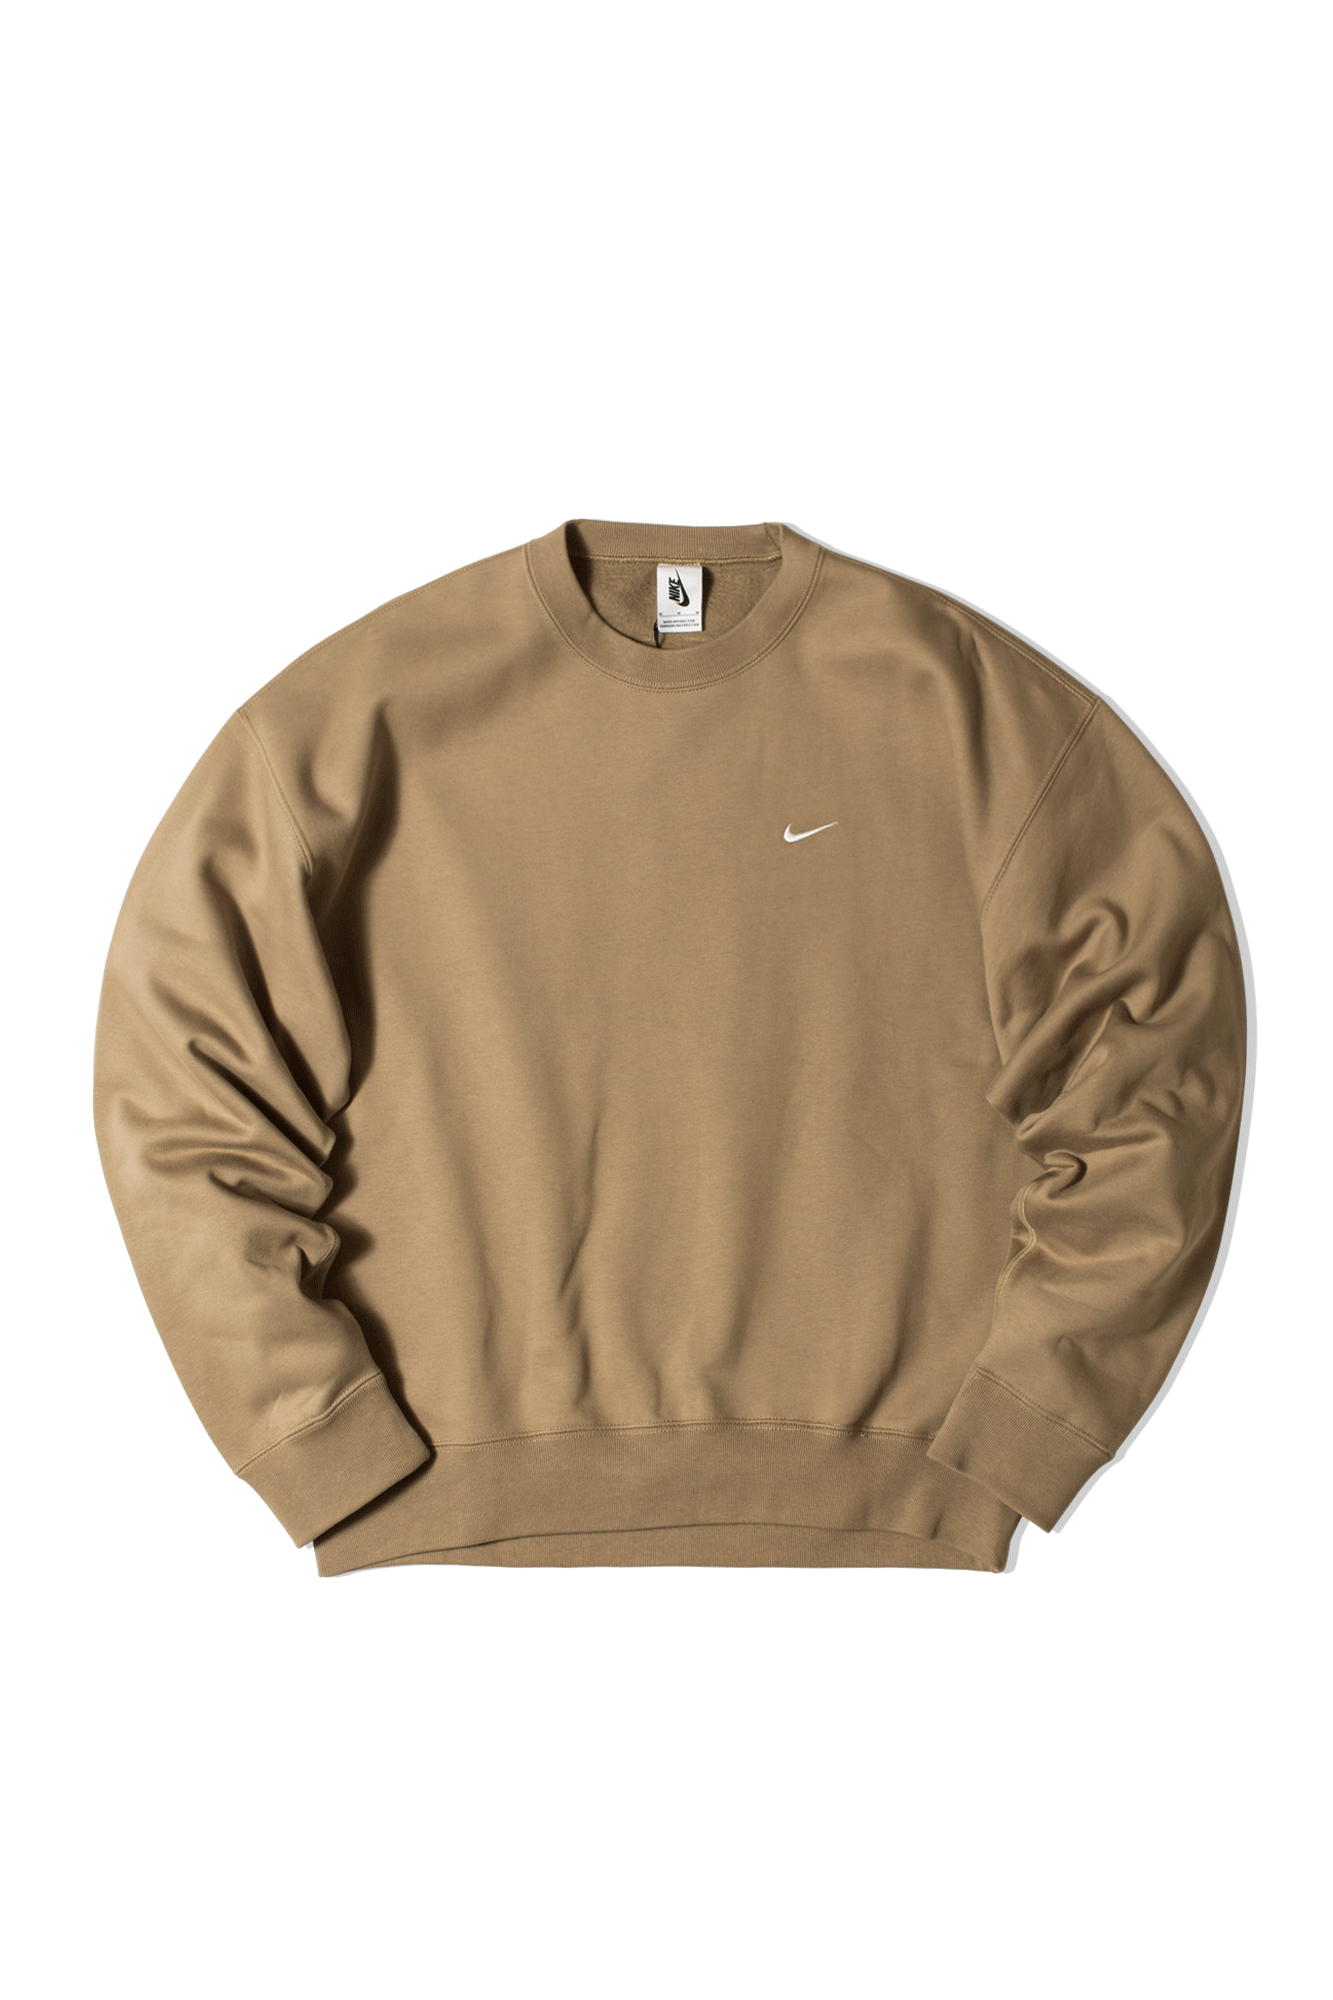 M NRG SlowSwoosh Fleece Crewneck Sweatshirt Green